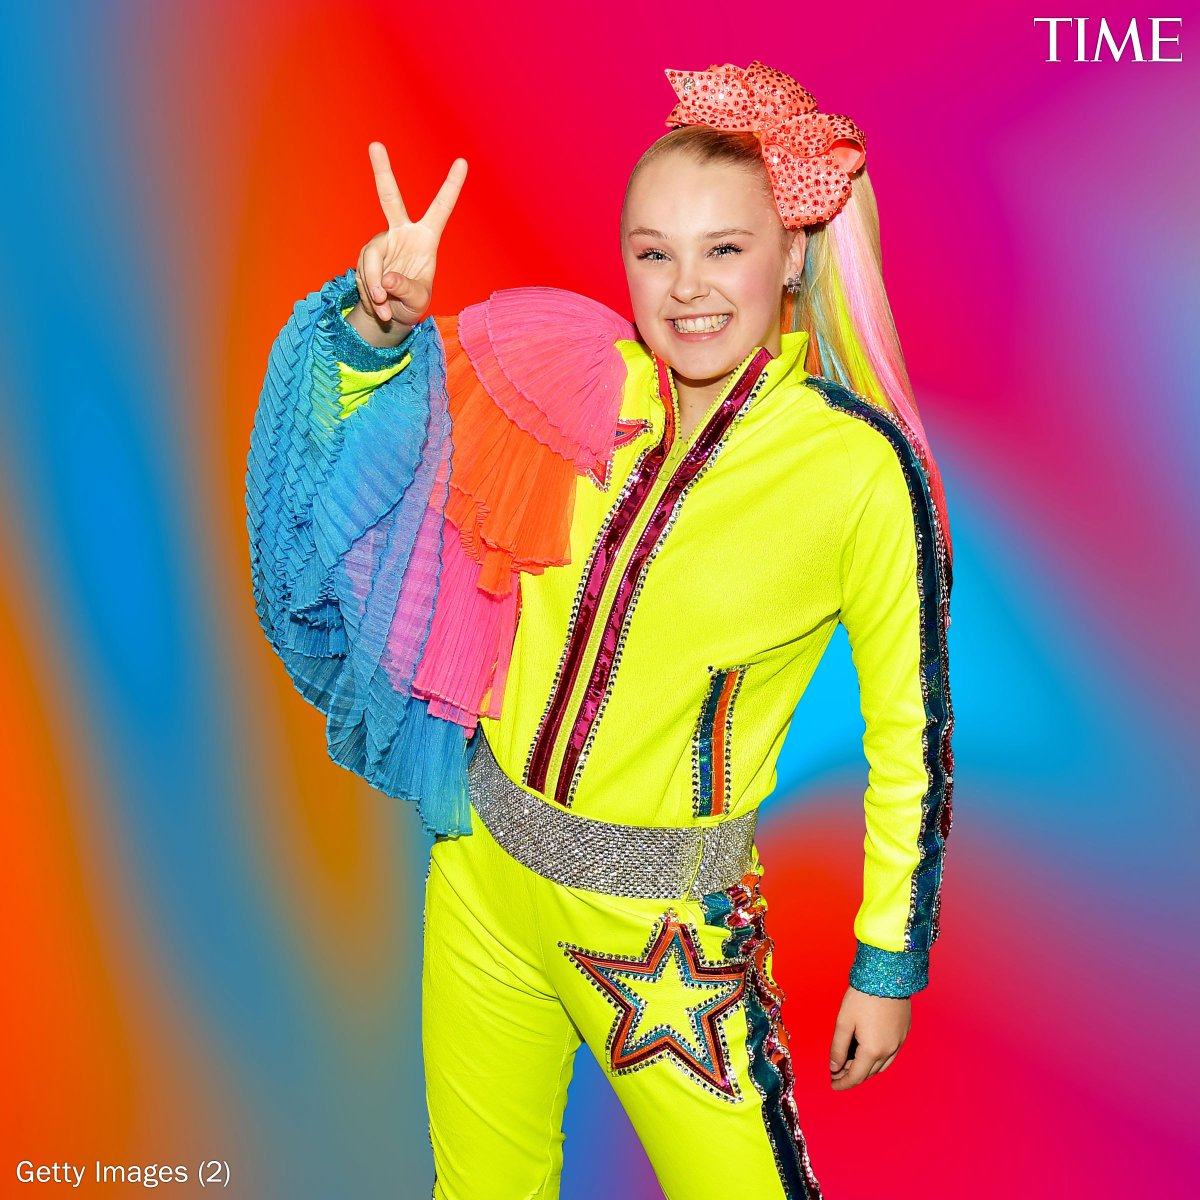 Teen star @itsjojosiwa is one of TIME's most influential people on the Internet this year mag.time.com/sToLL3W